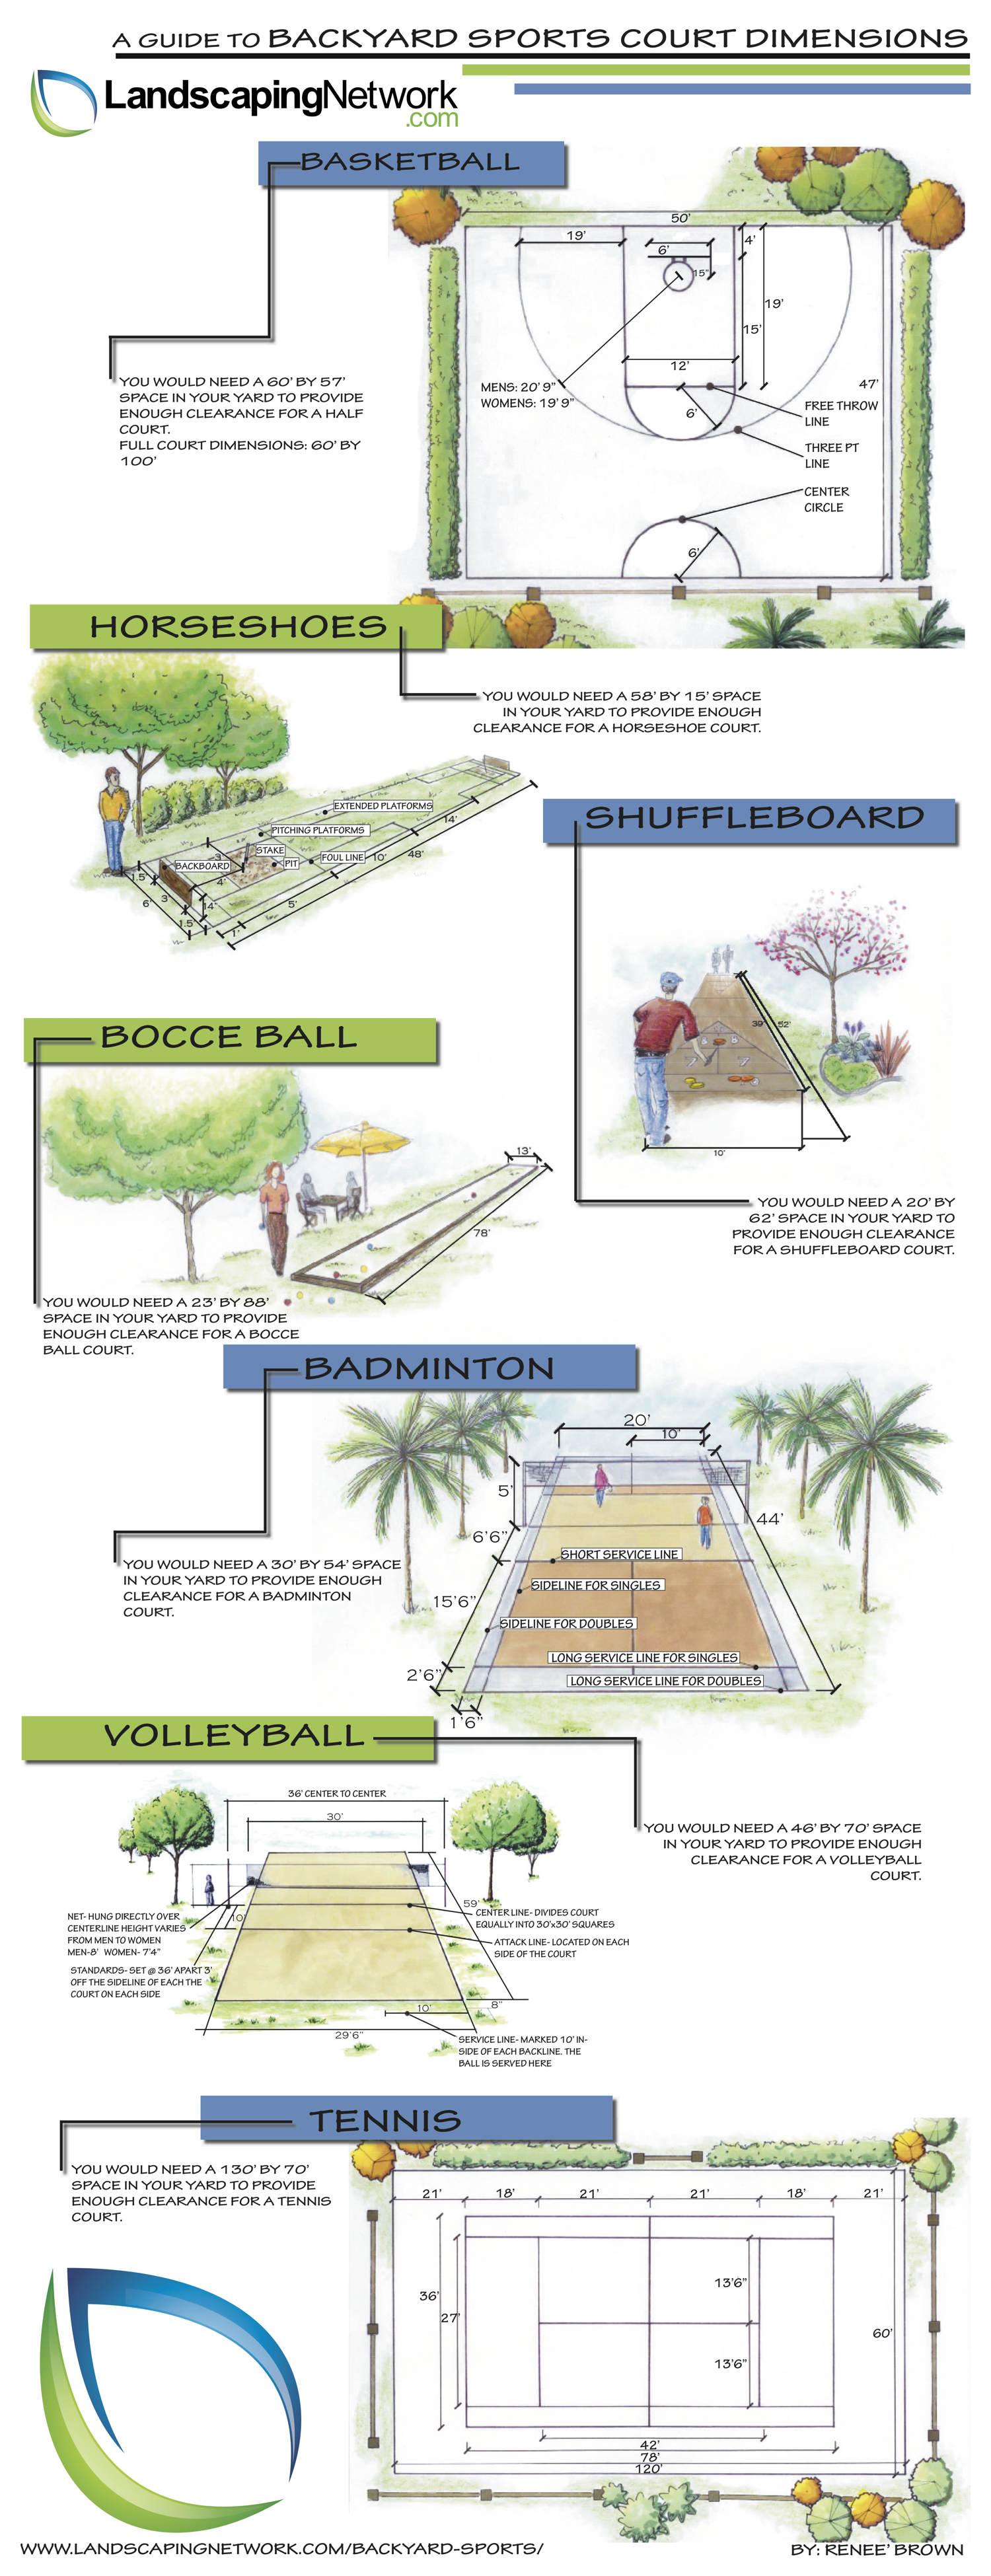 Backyard Sports Court Dimensions infographic